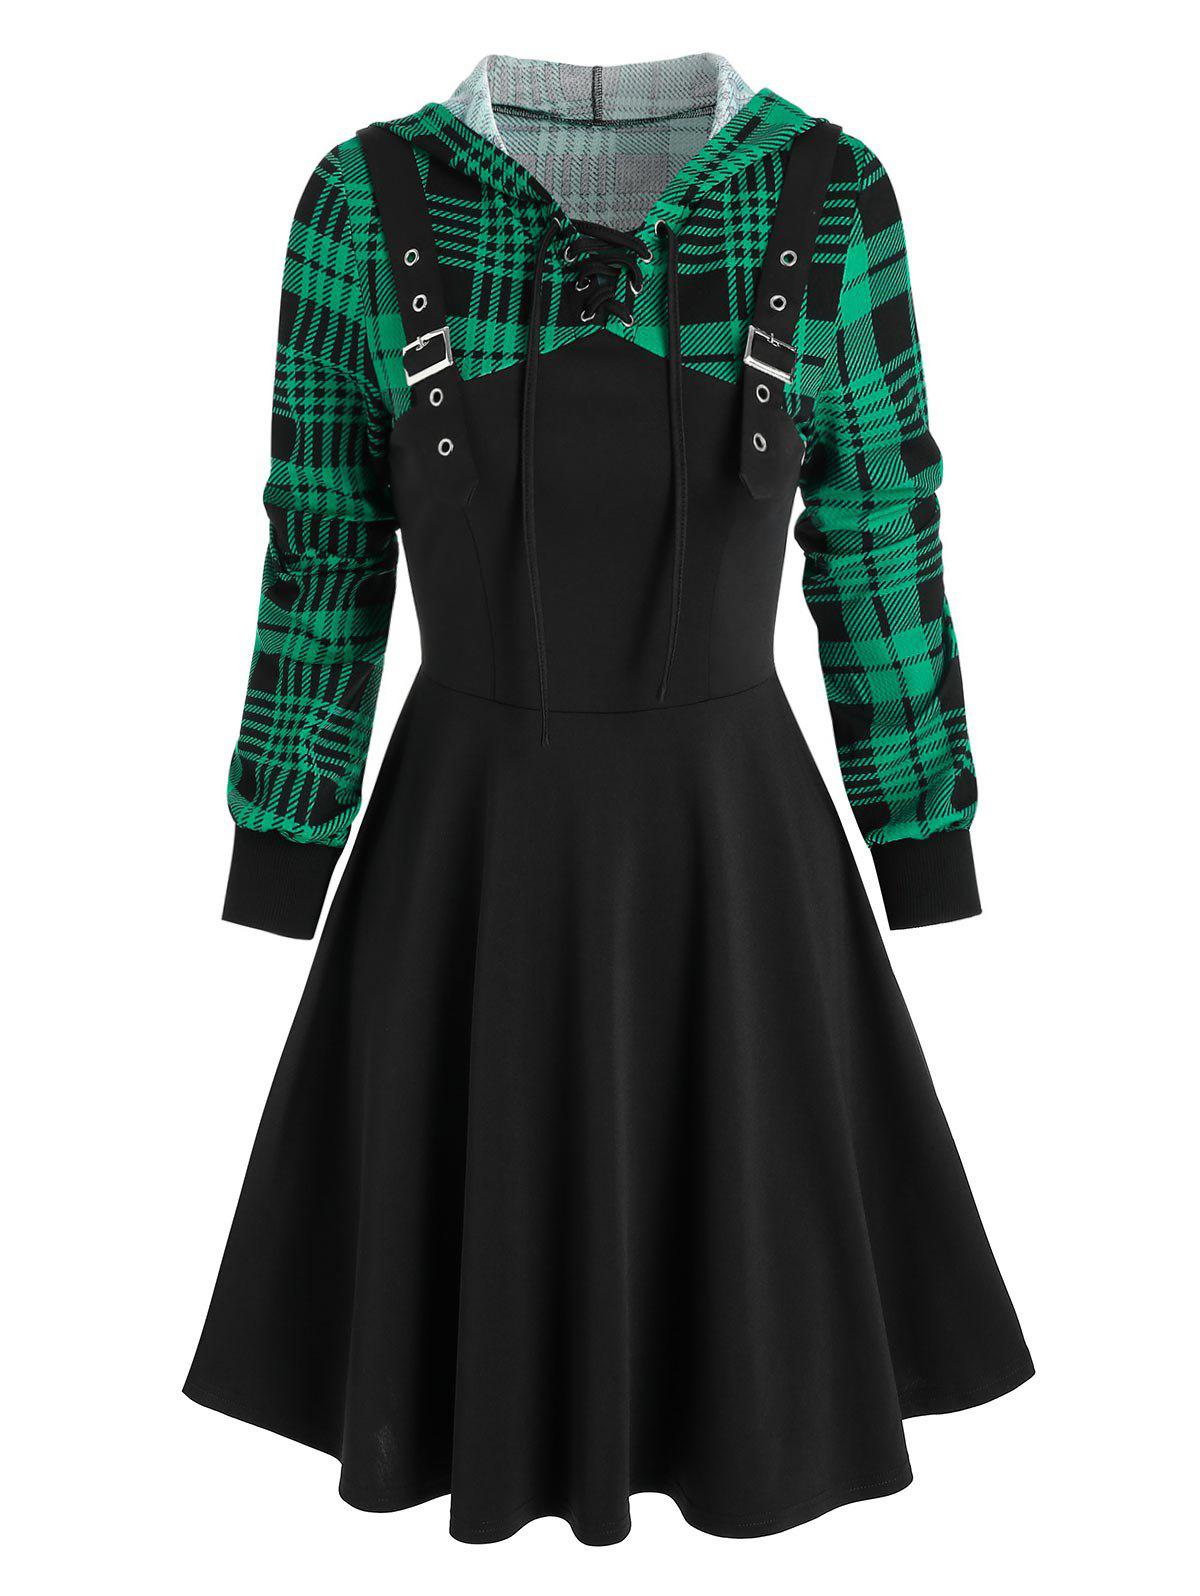 Online Hooded Plaid Print Buckle Strap Lace-up Dress